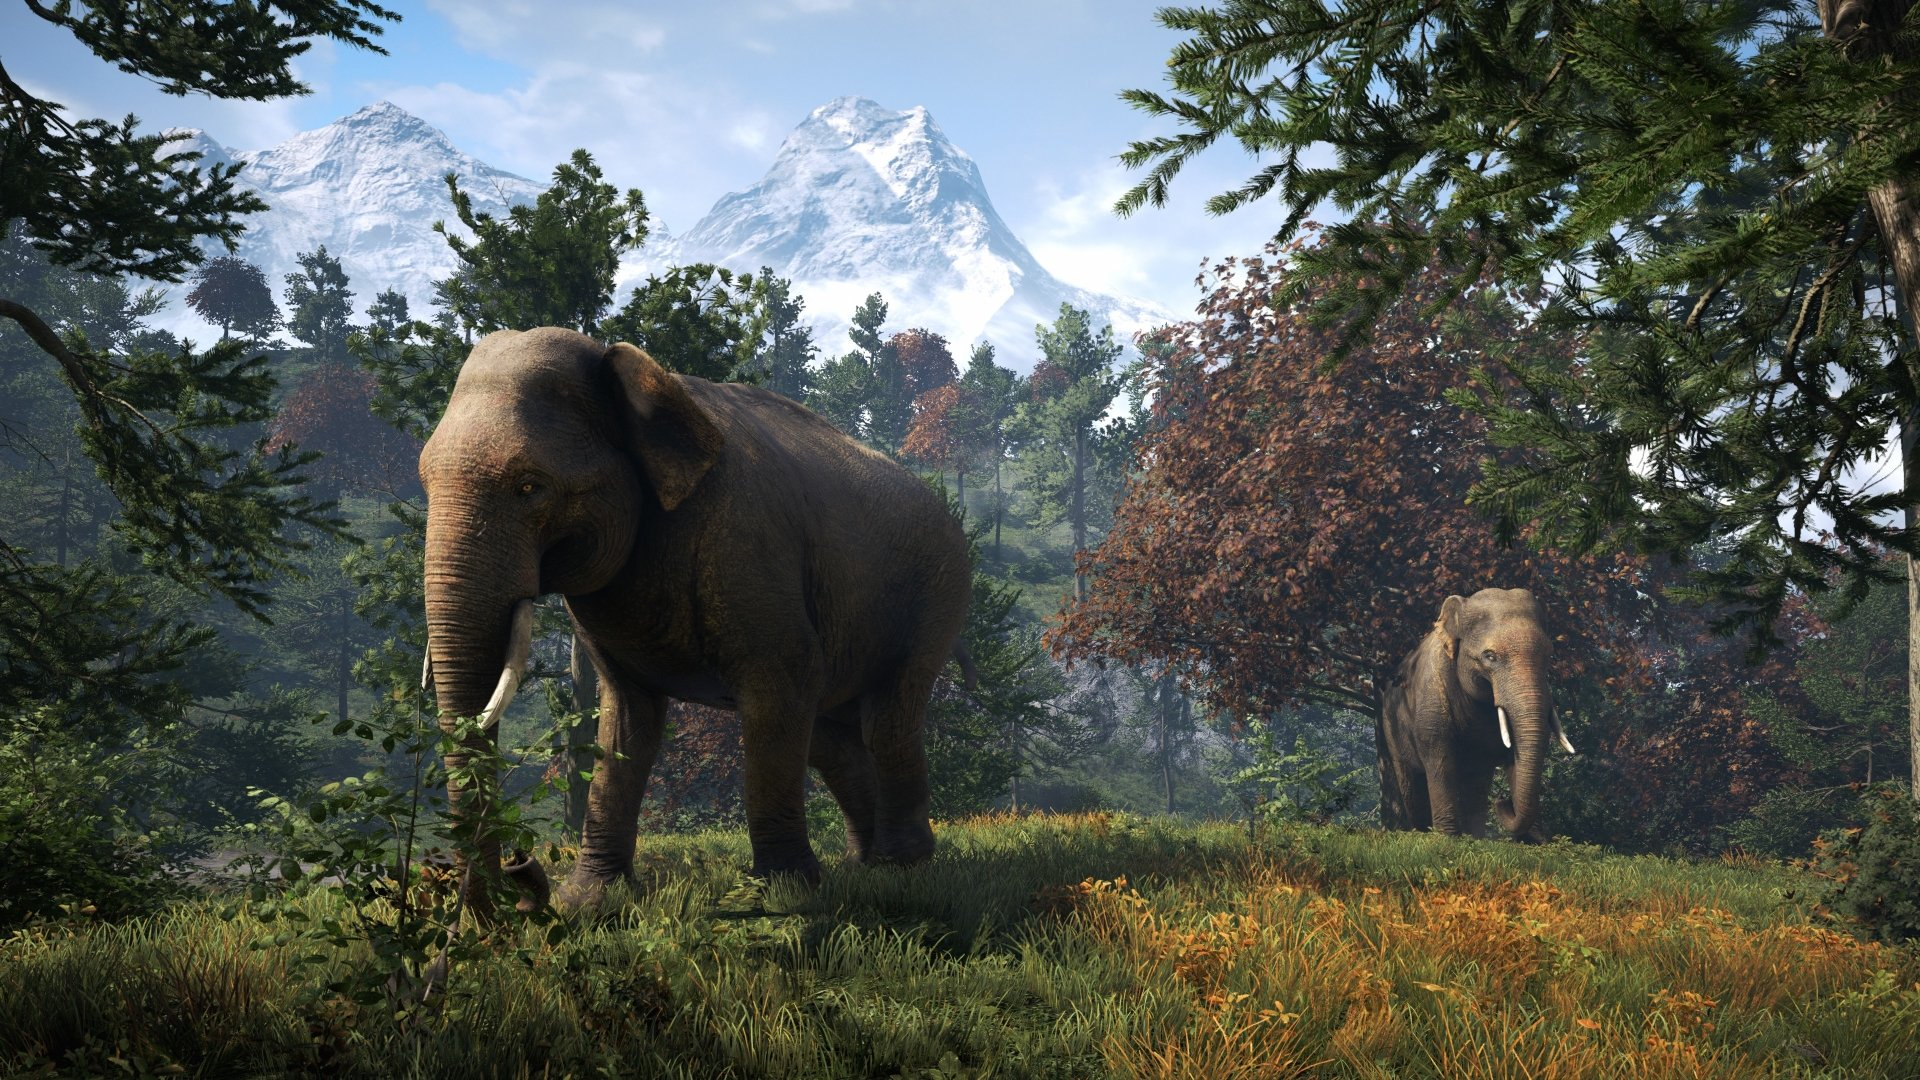 Far Cry 4 Wallpaper Elephant: Far Cry 4 4k Ultra HD Wallpaper And Background Image